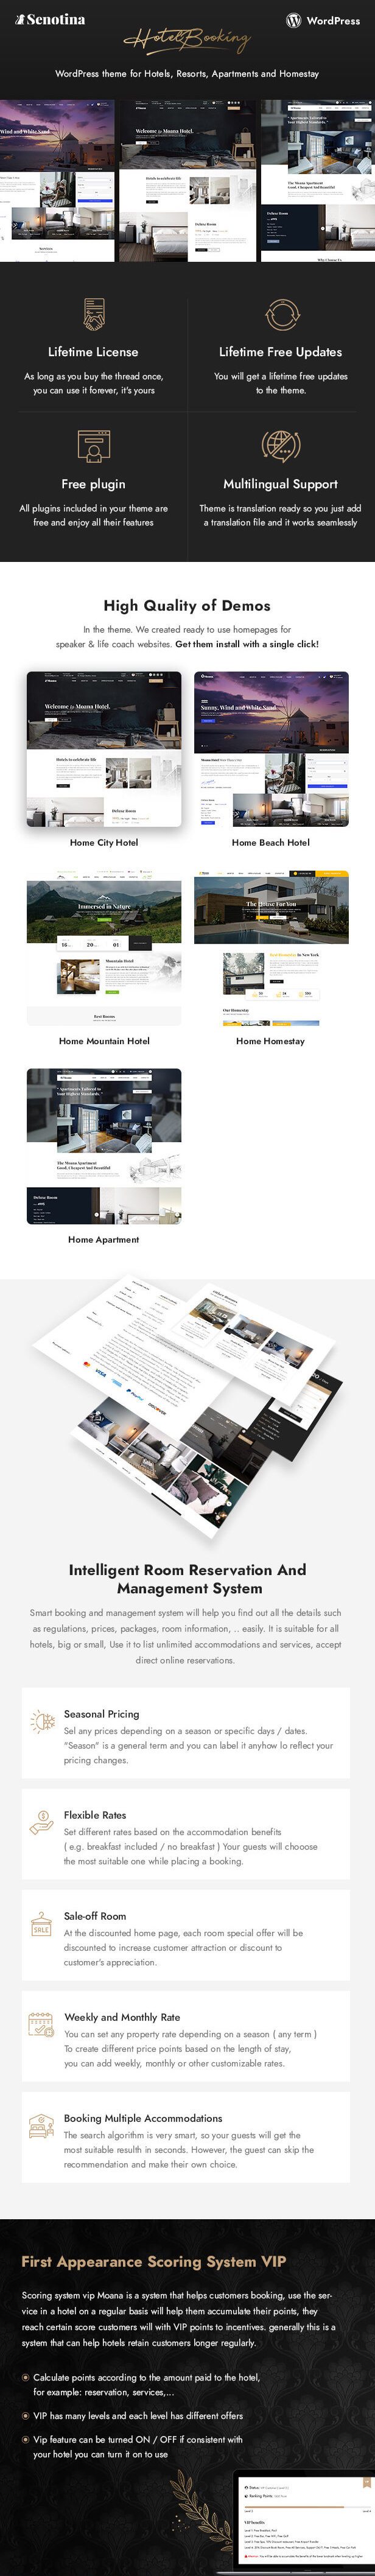 Senotina - Resort and Hotel WordPress Theme - 5